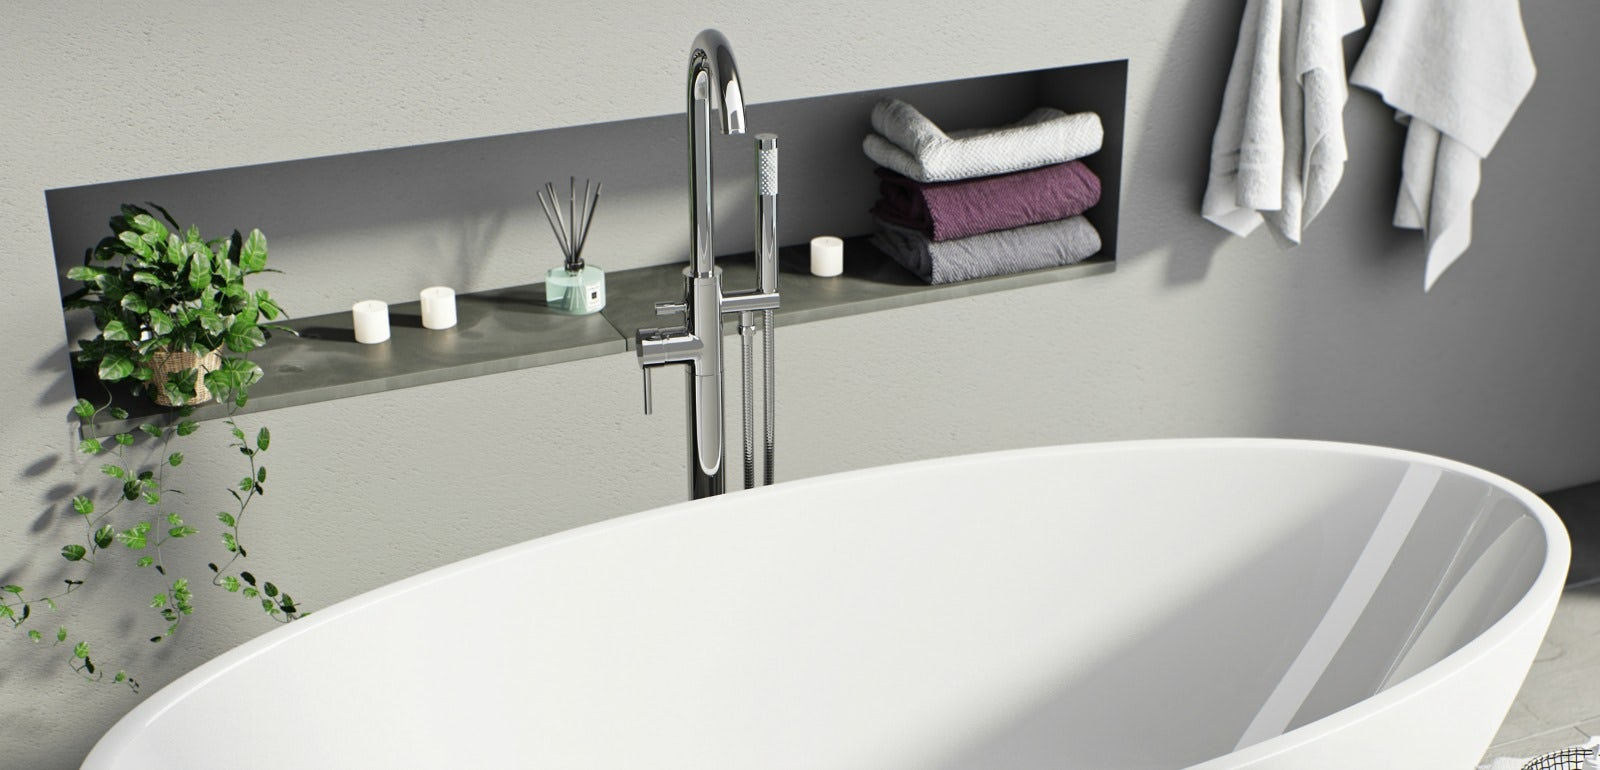 Bring a swish of TOWIE style glamour into your bathroom